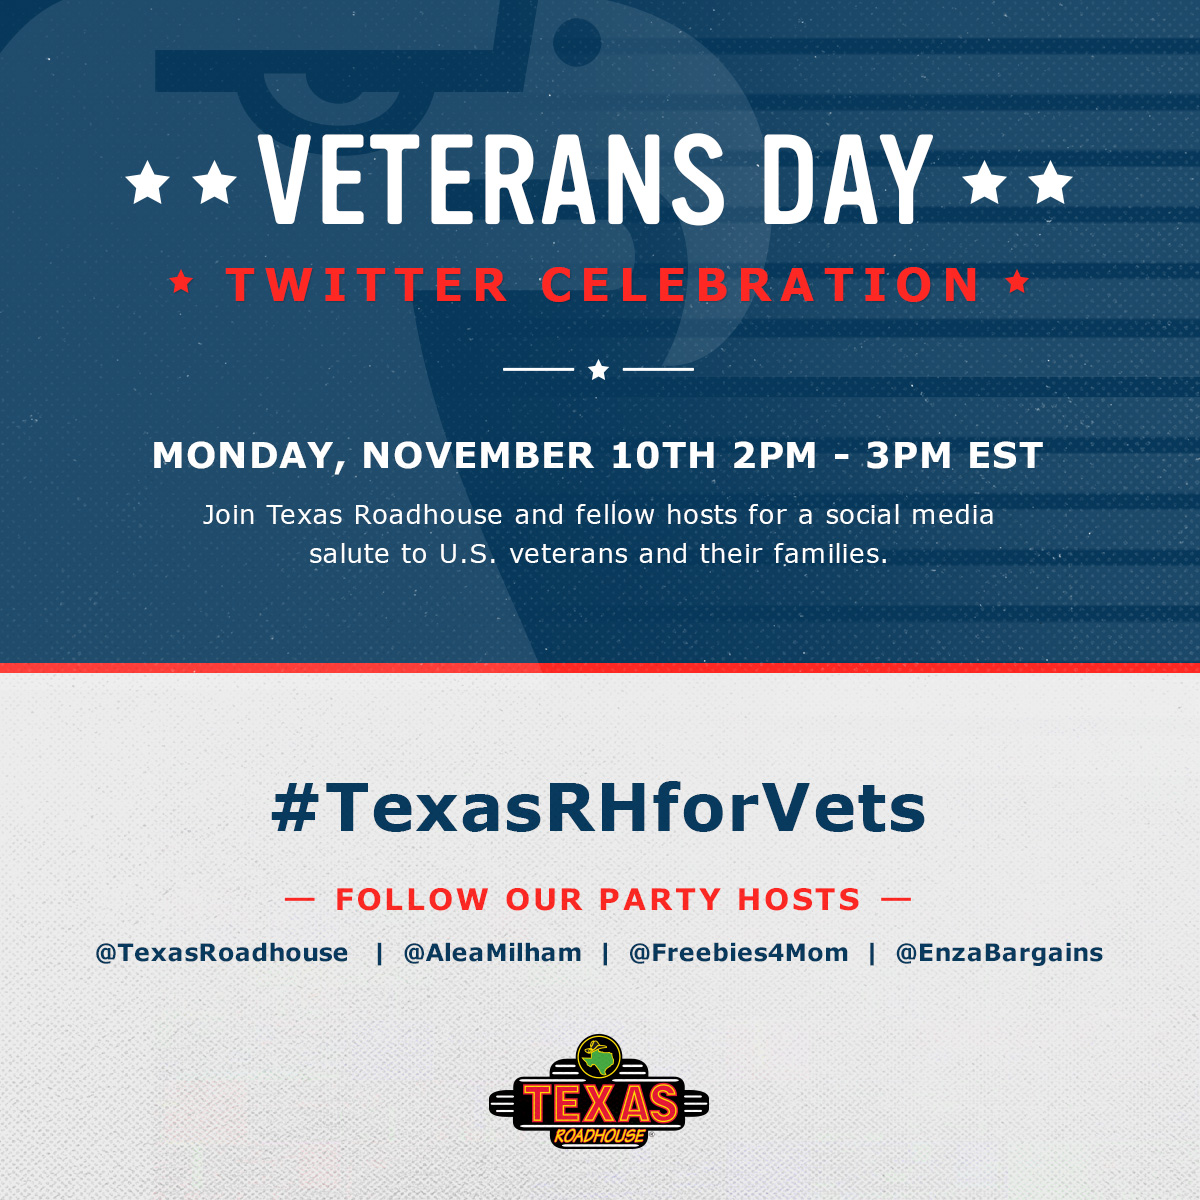 $400 in Prizes at #TexasRHforVets Twitter Party Nov. 10 2pm ET